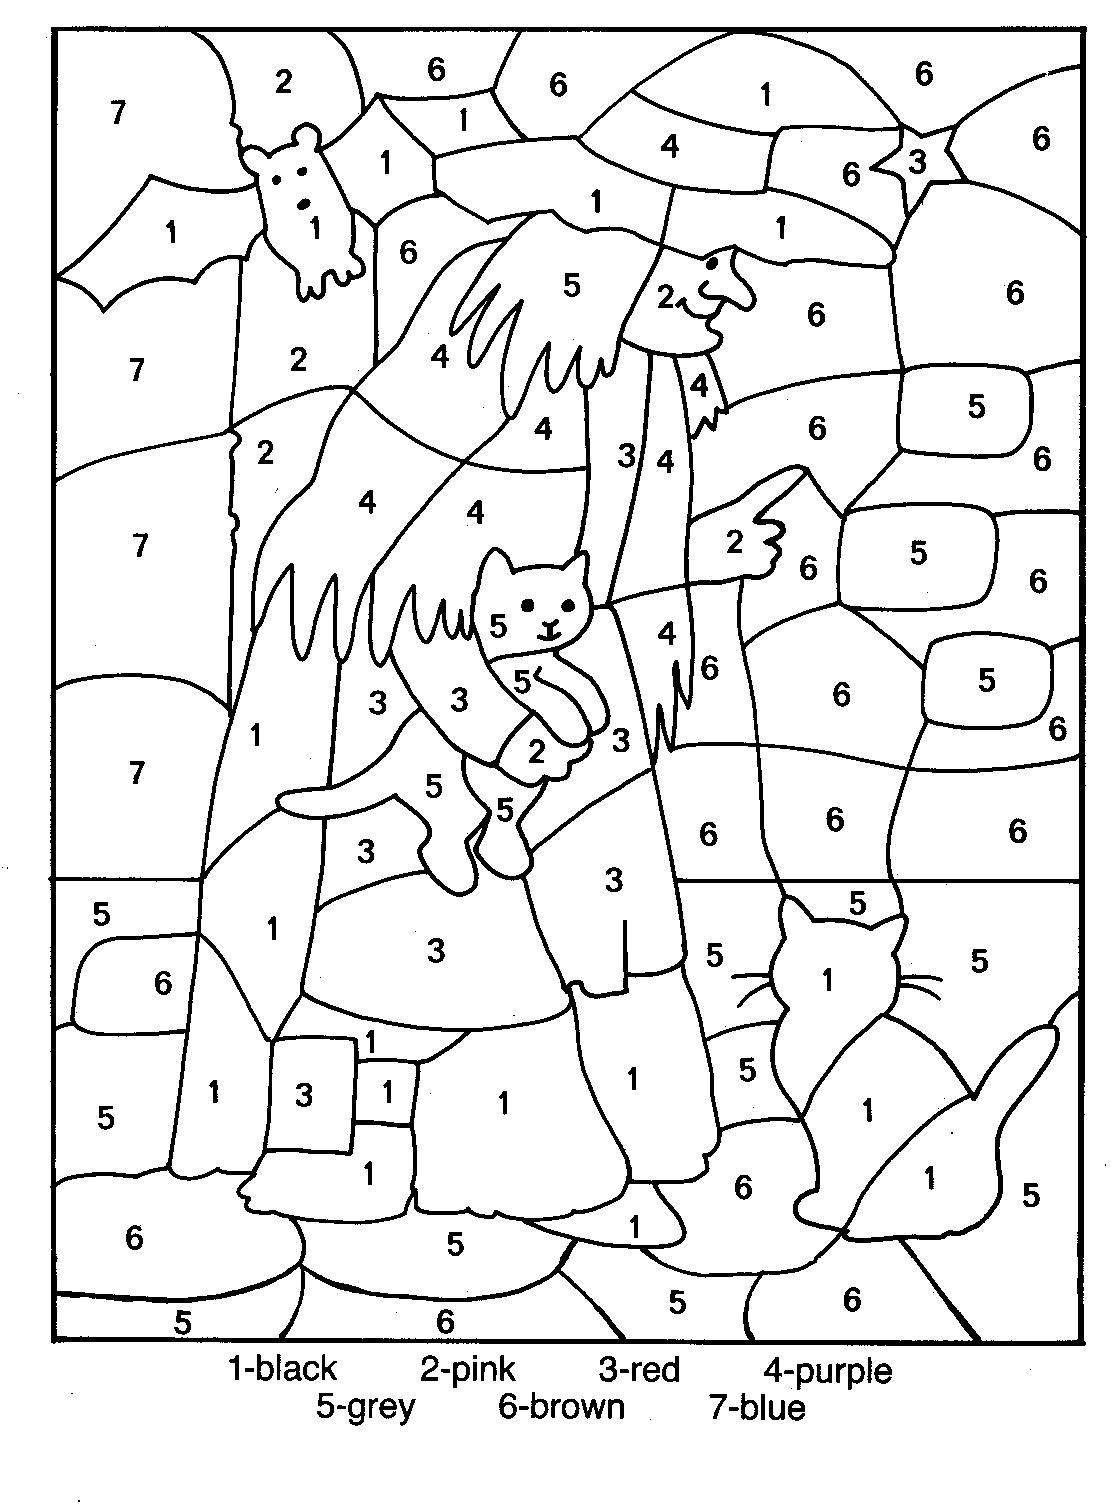 Color worksheets by number - Color By Number Coloring Pages For Kids 4